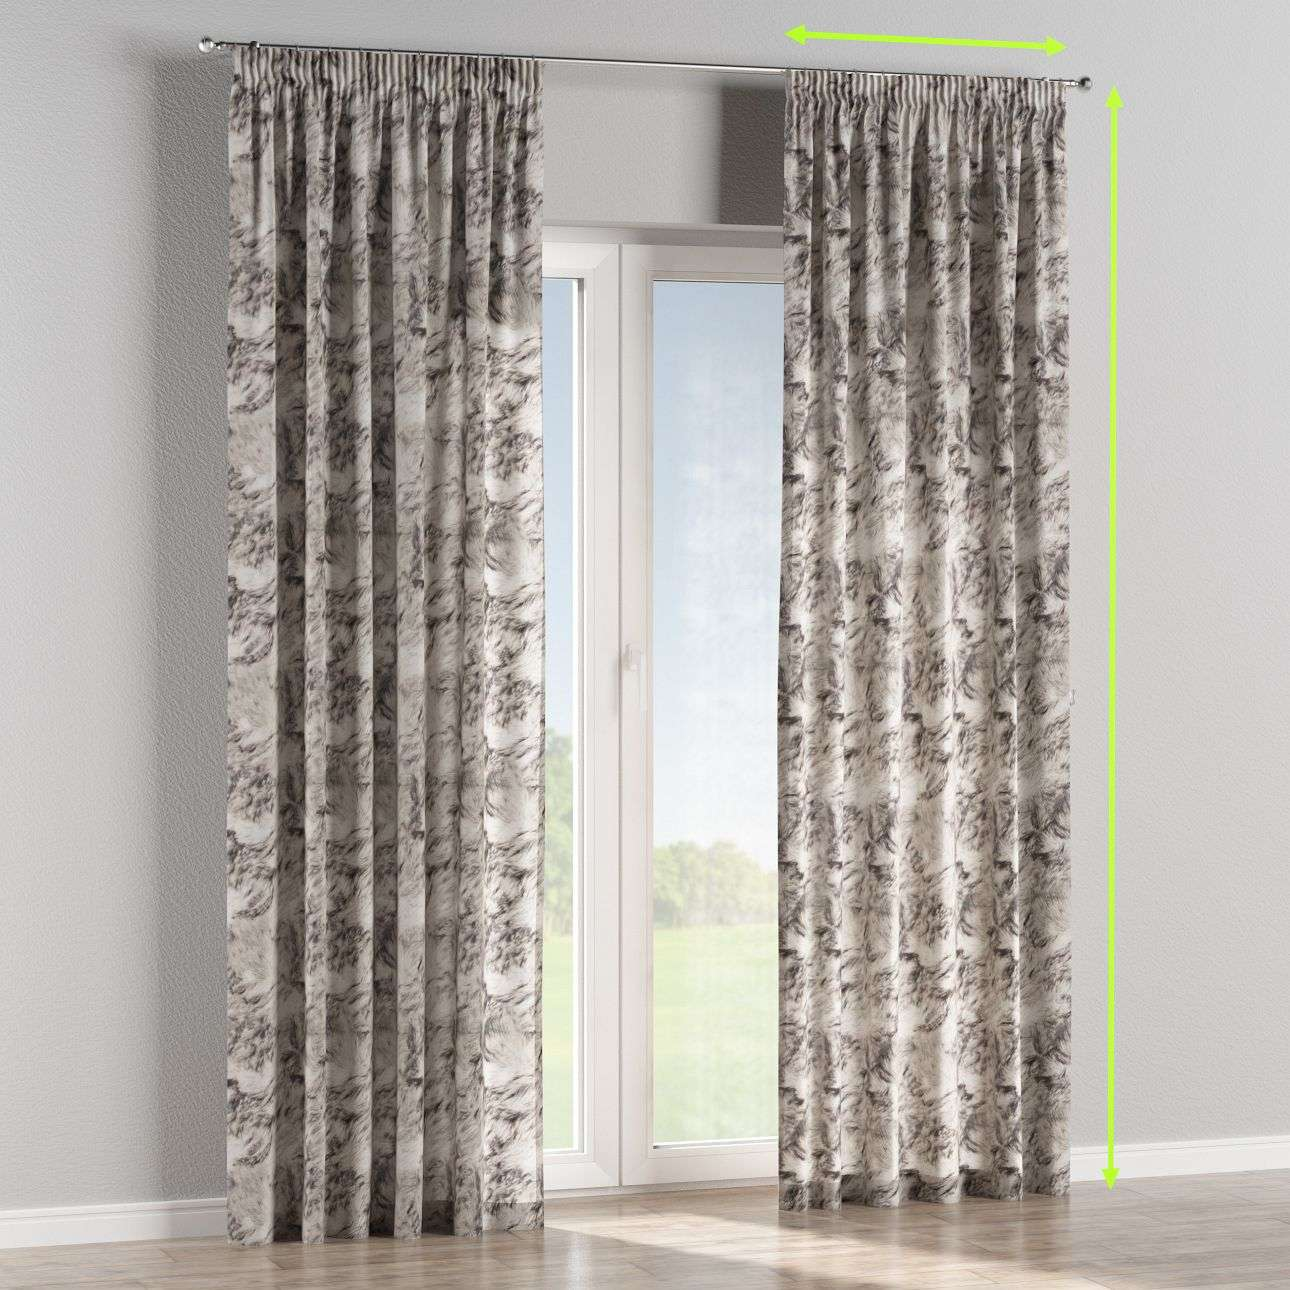 Pencil pleat lined curtains in collection Norge, fabric: 140-82